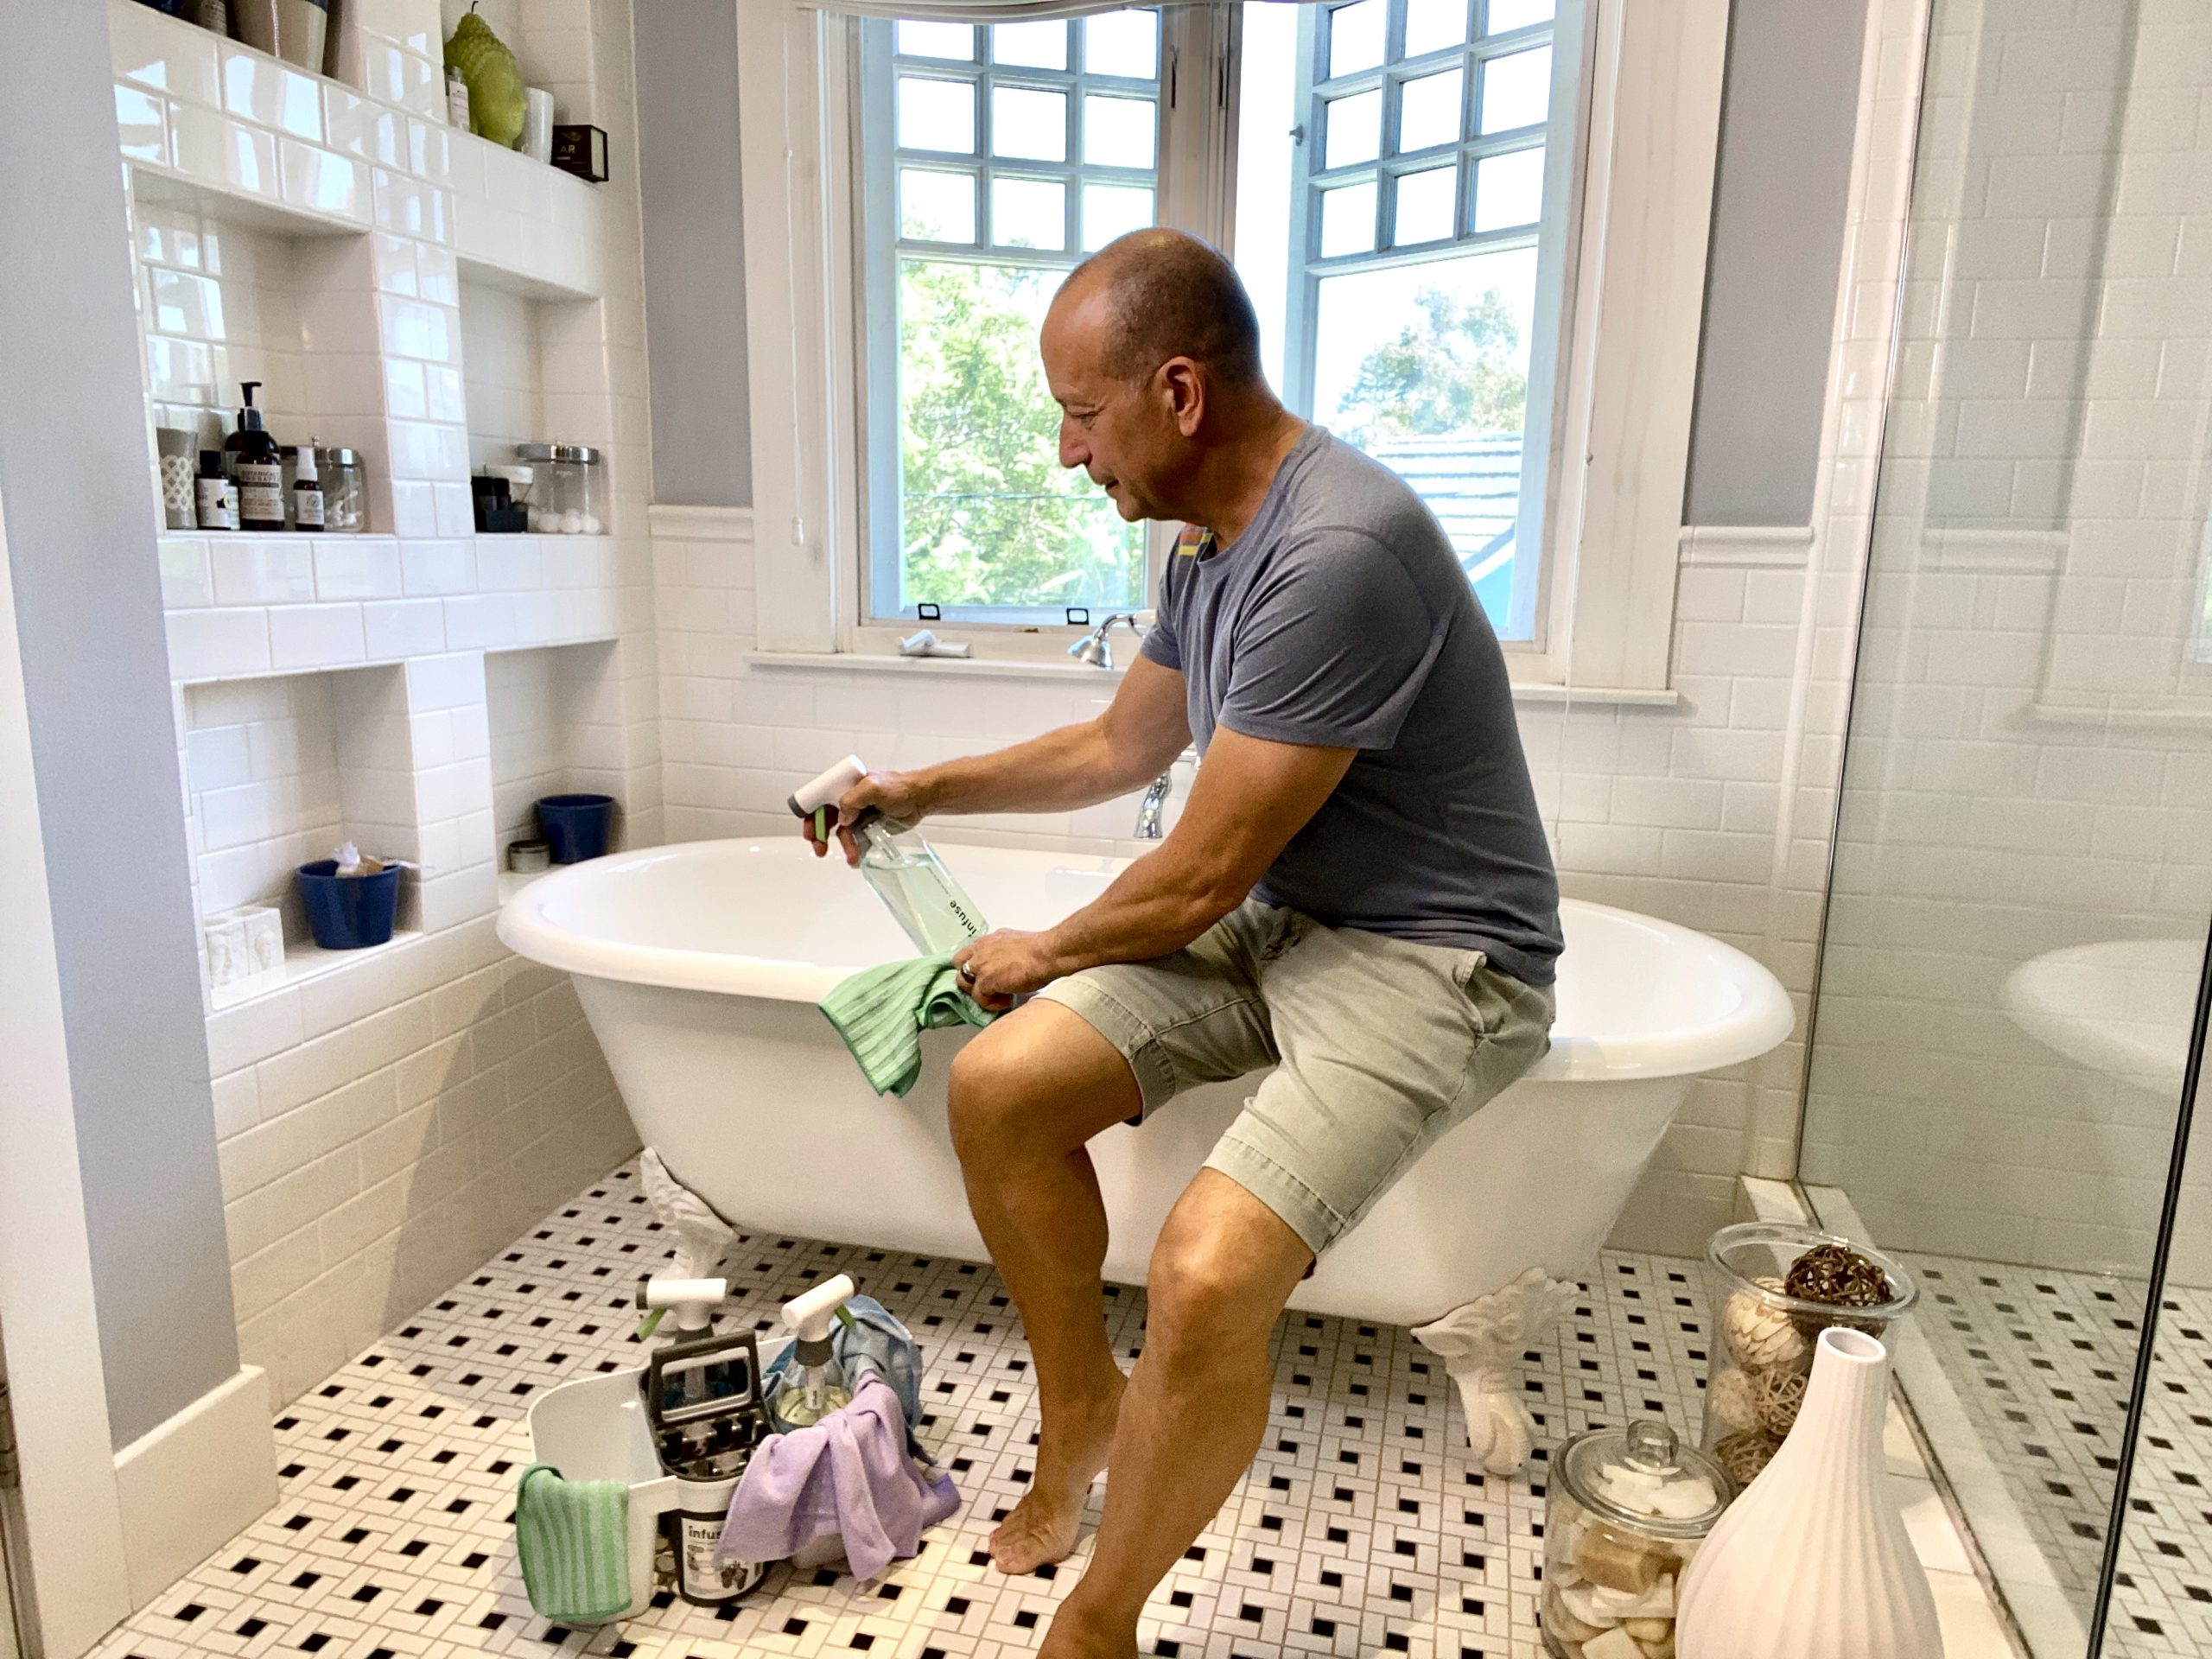 man cleaning bathroom tub with Infuse Cleaning Products